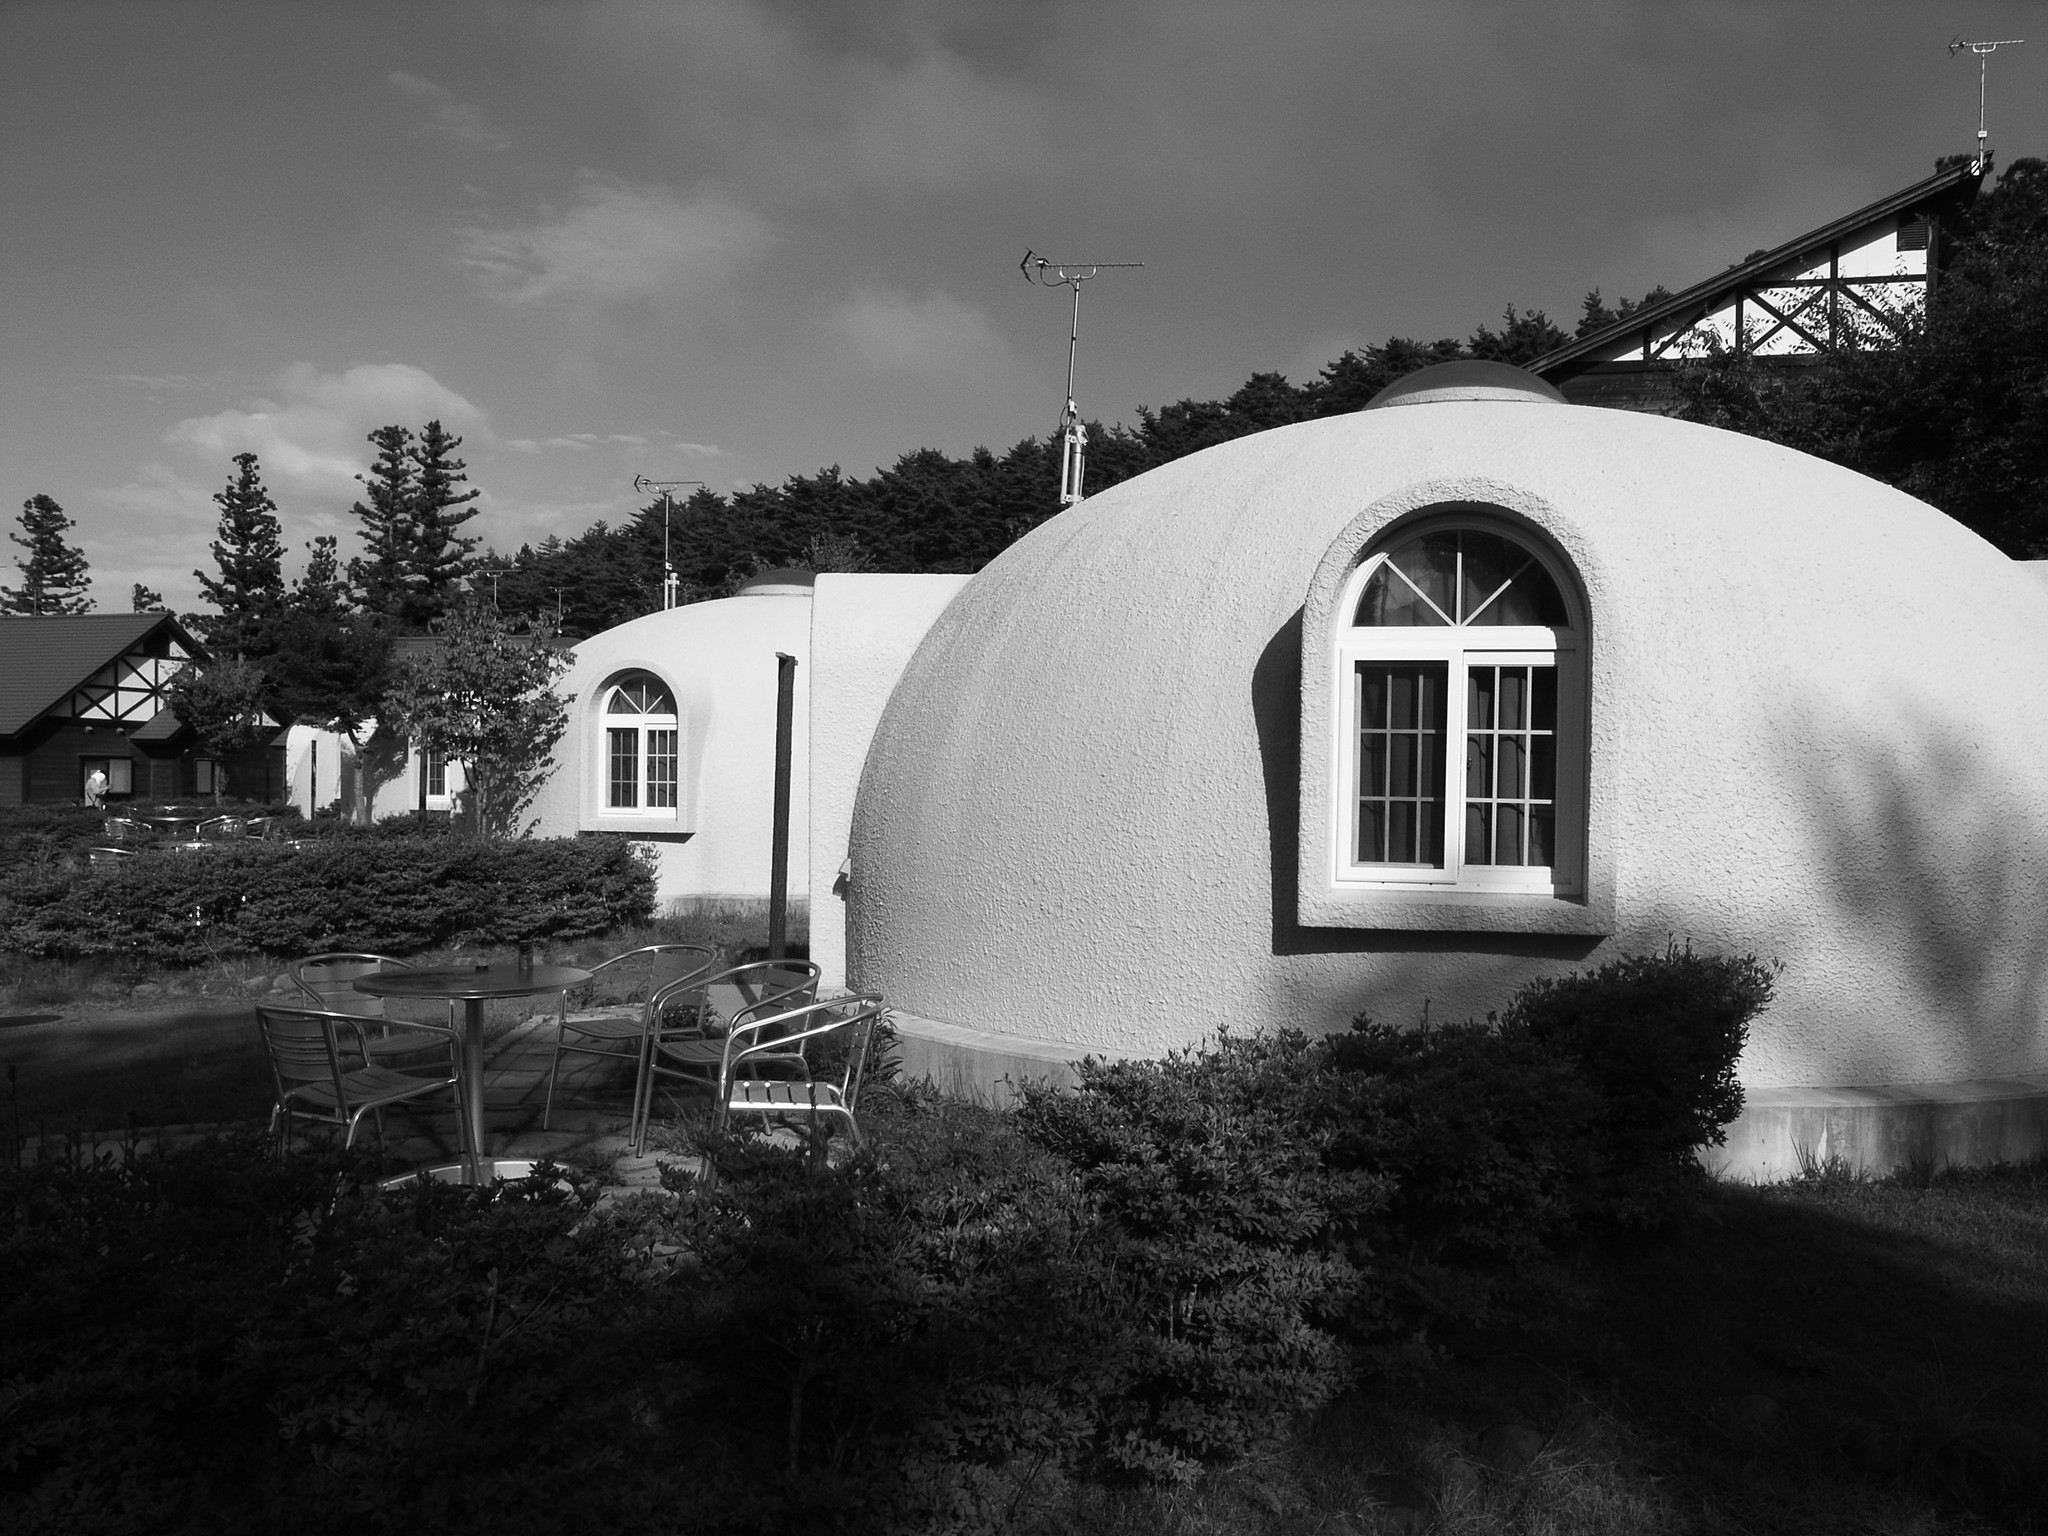 Dome houses, features and efficiency